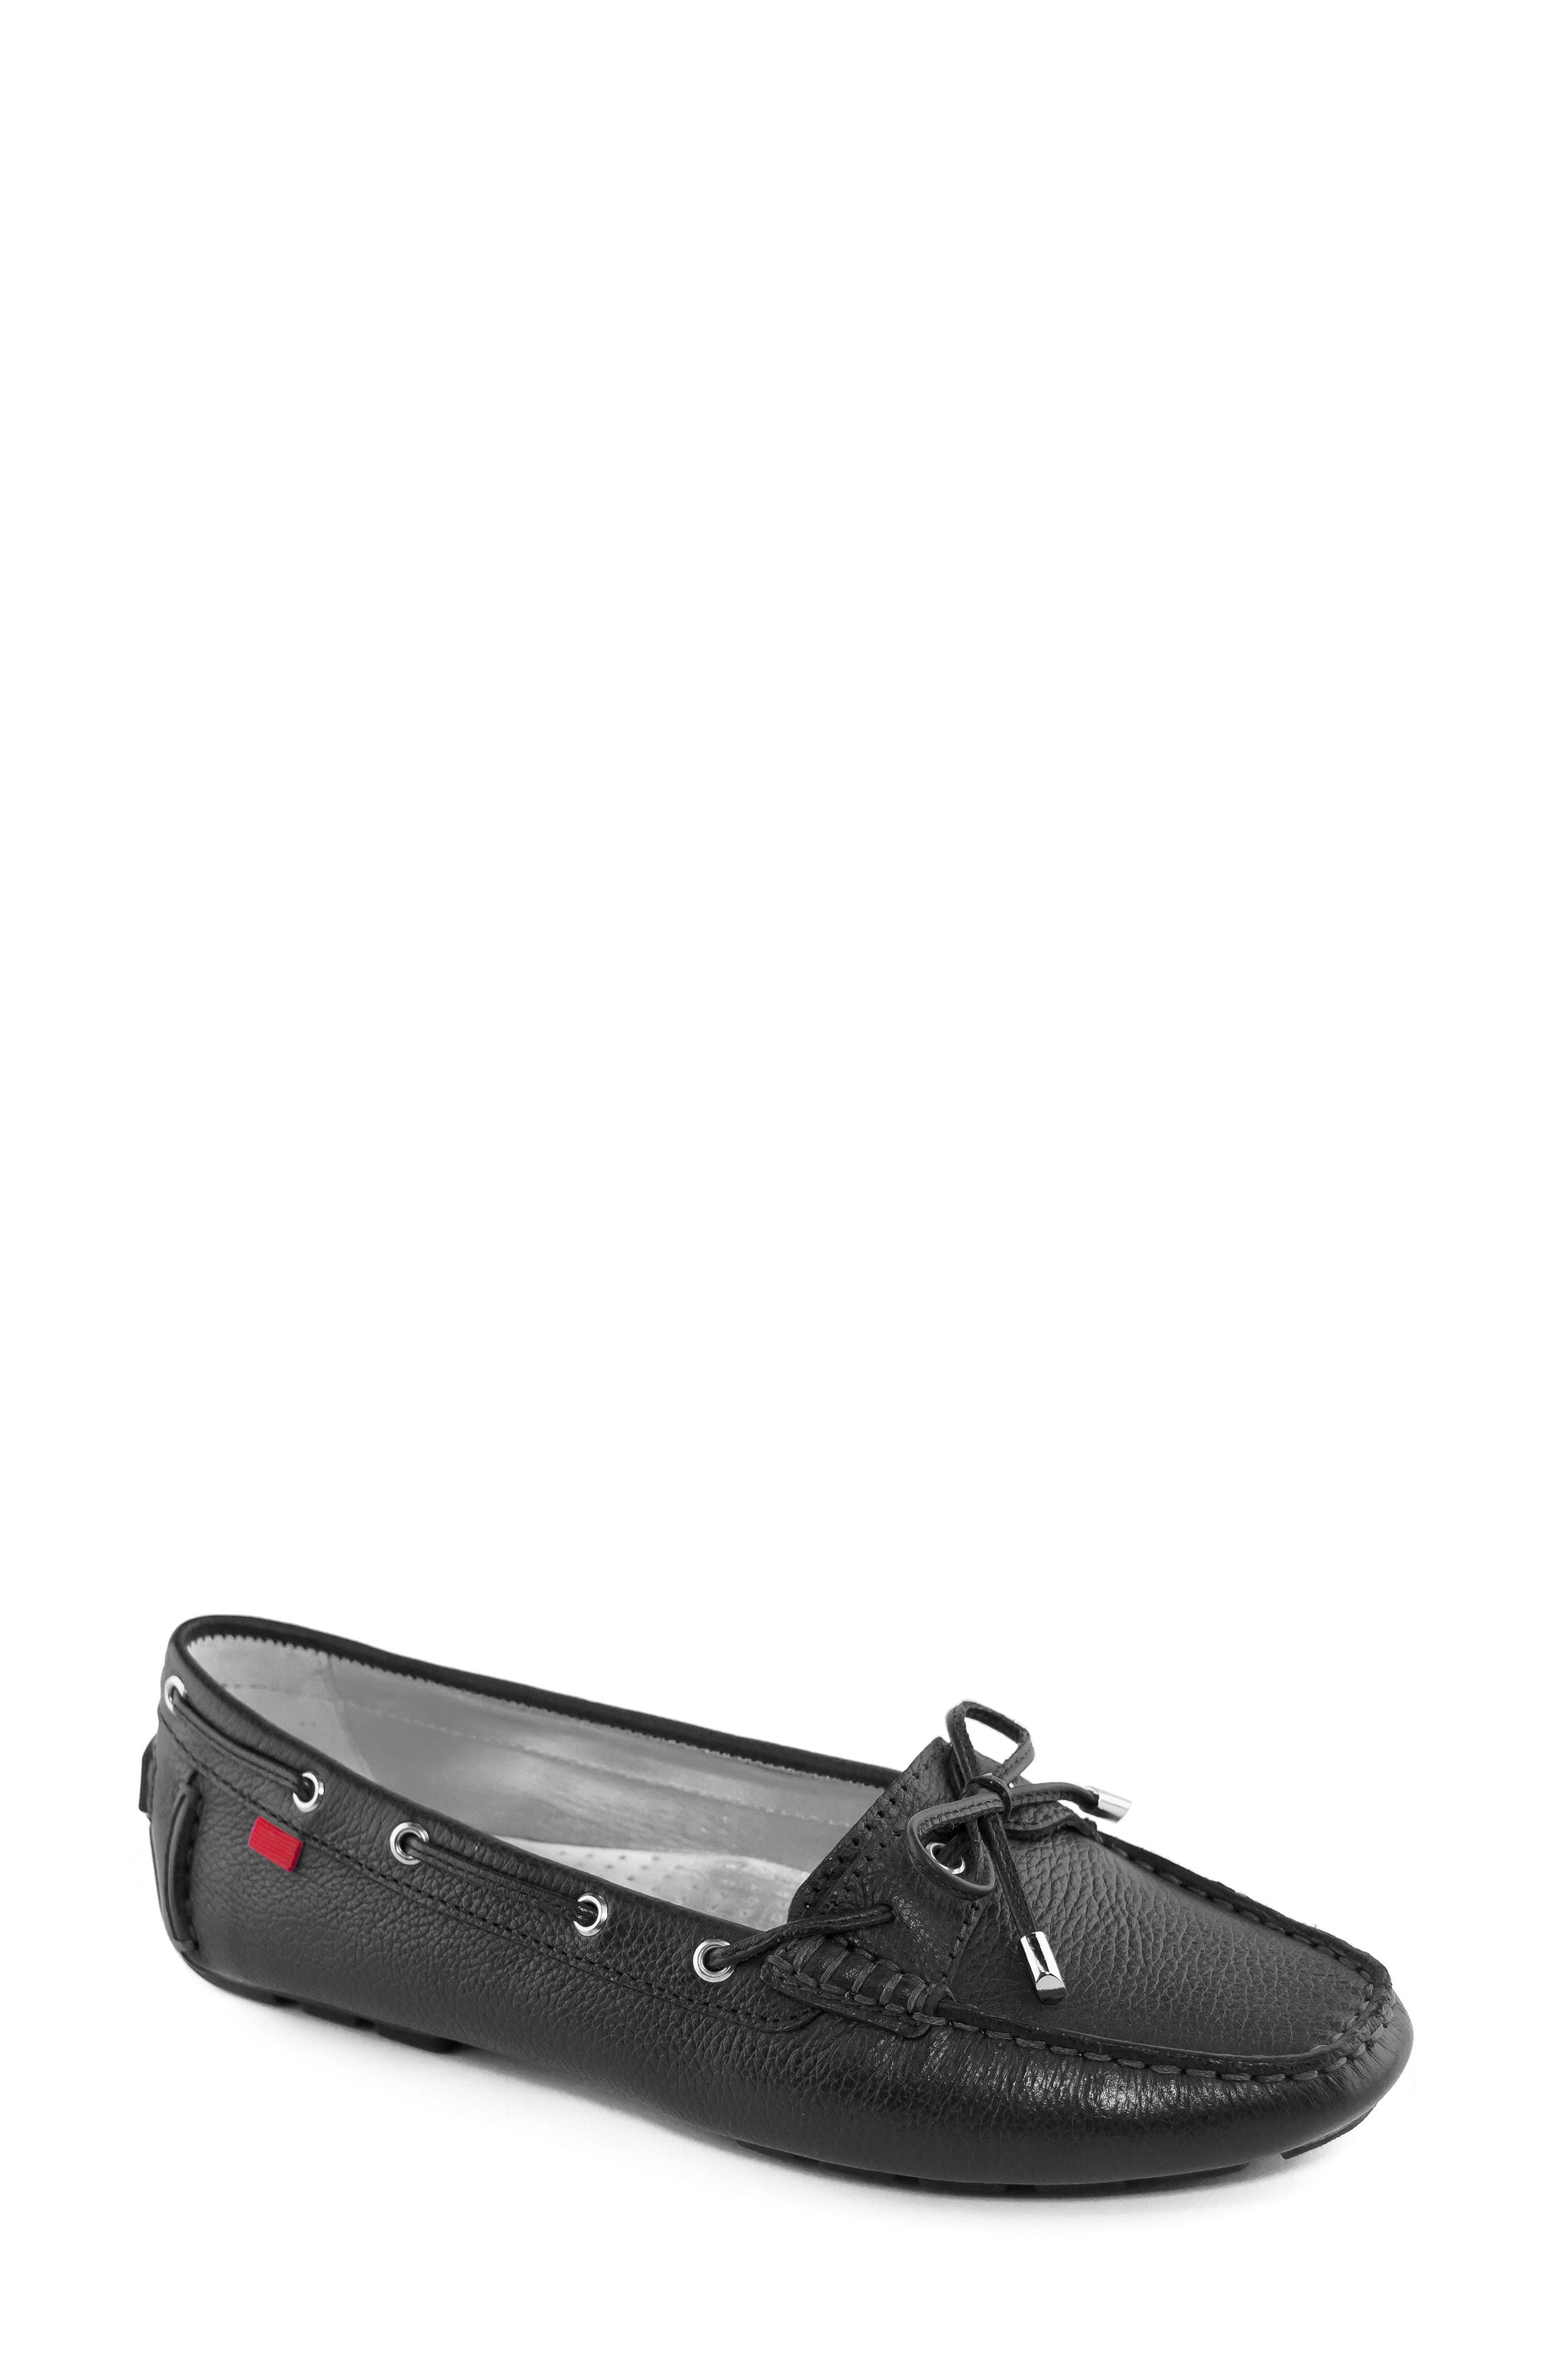 MARC JOSEPH NEW YORK Rockaway Loafer, Main, color, BLACK LEATHER